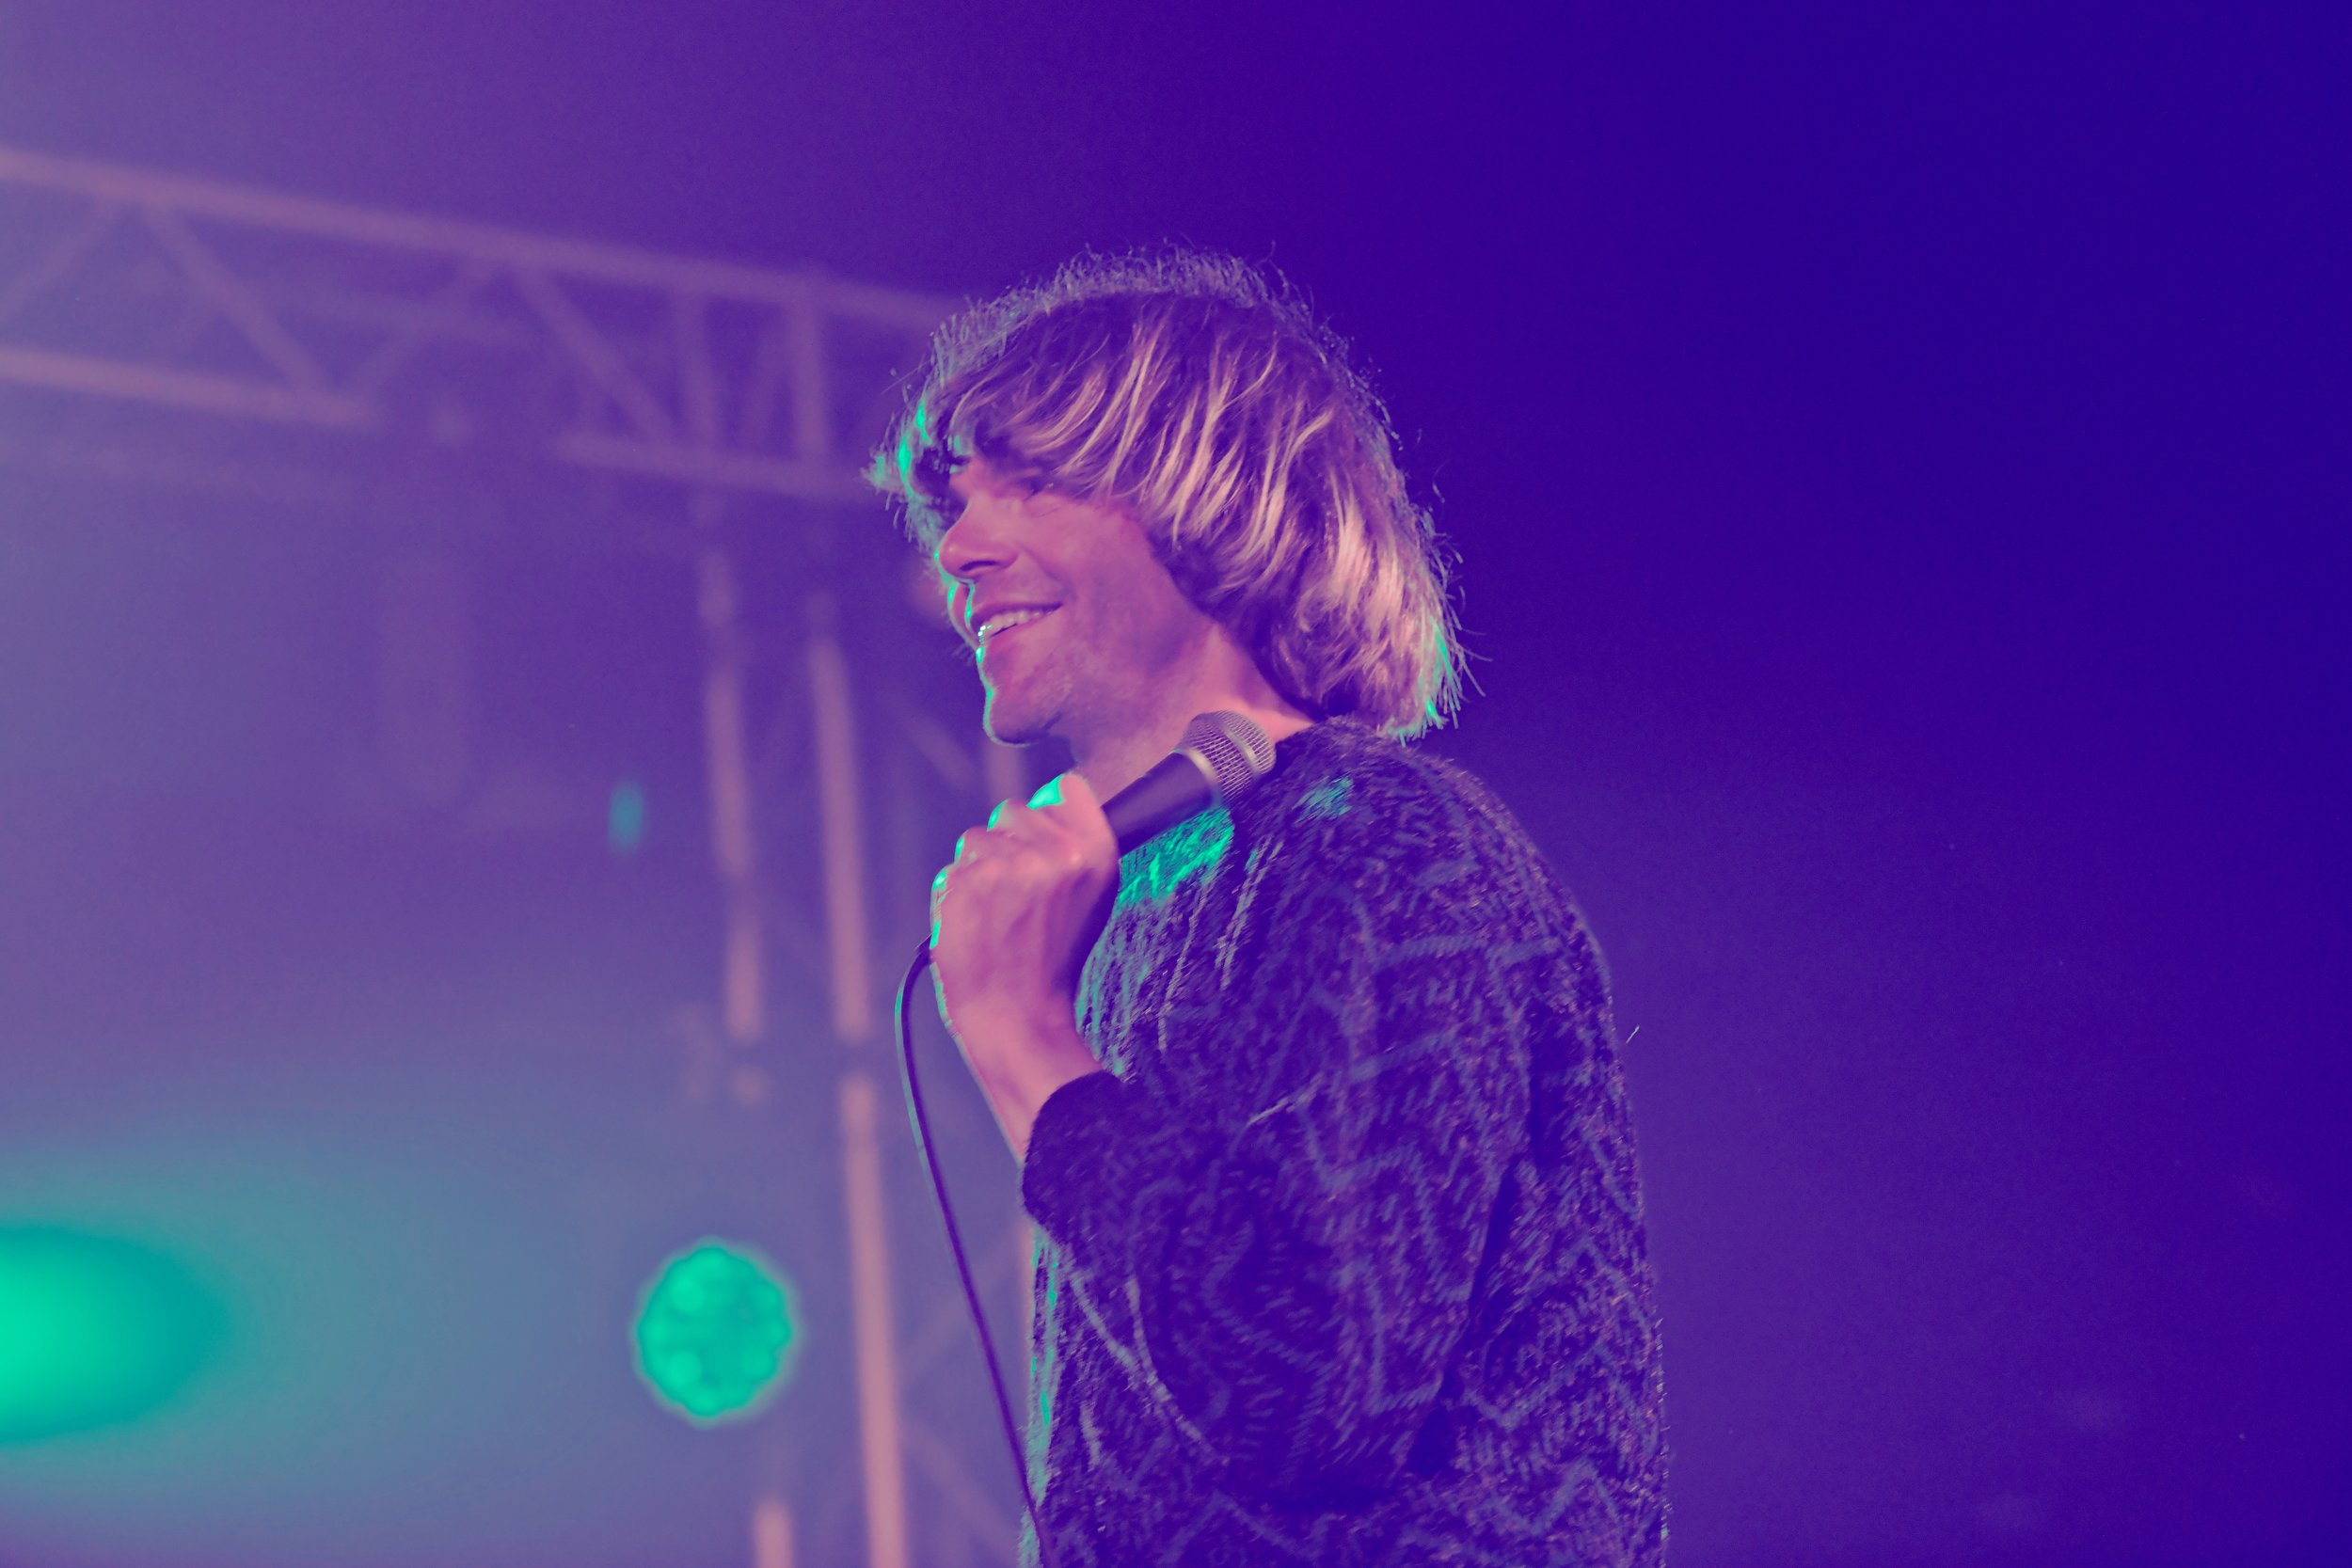 Tim Burgess performing at the Calling Out tent during Kendal Calling 2019. Photo: Cameron Murray